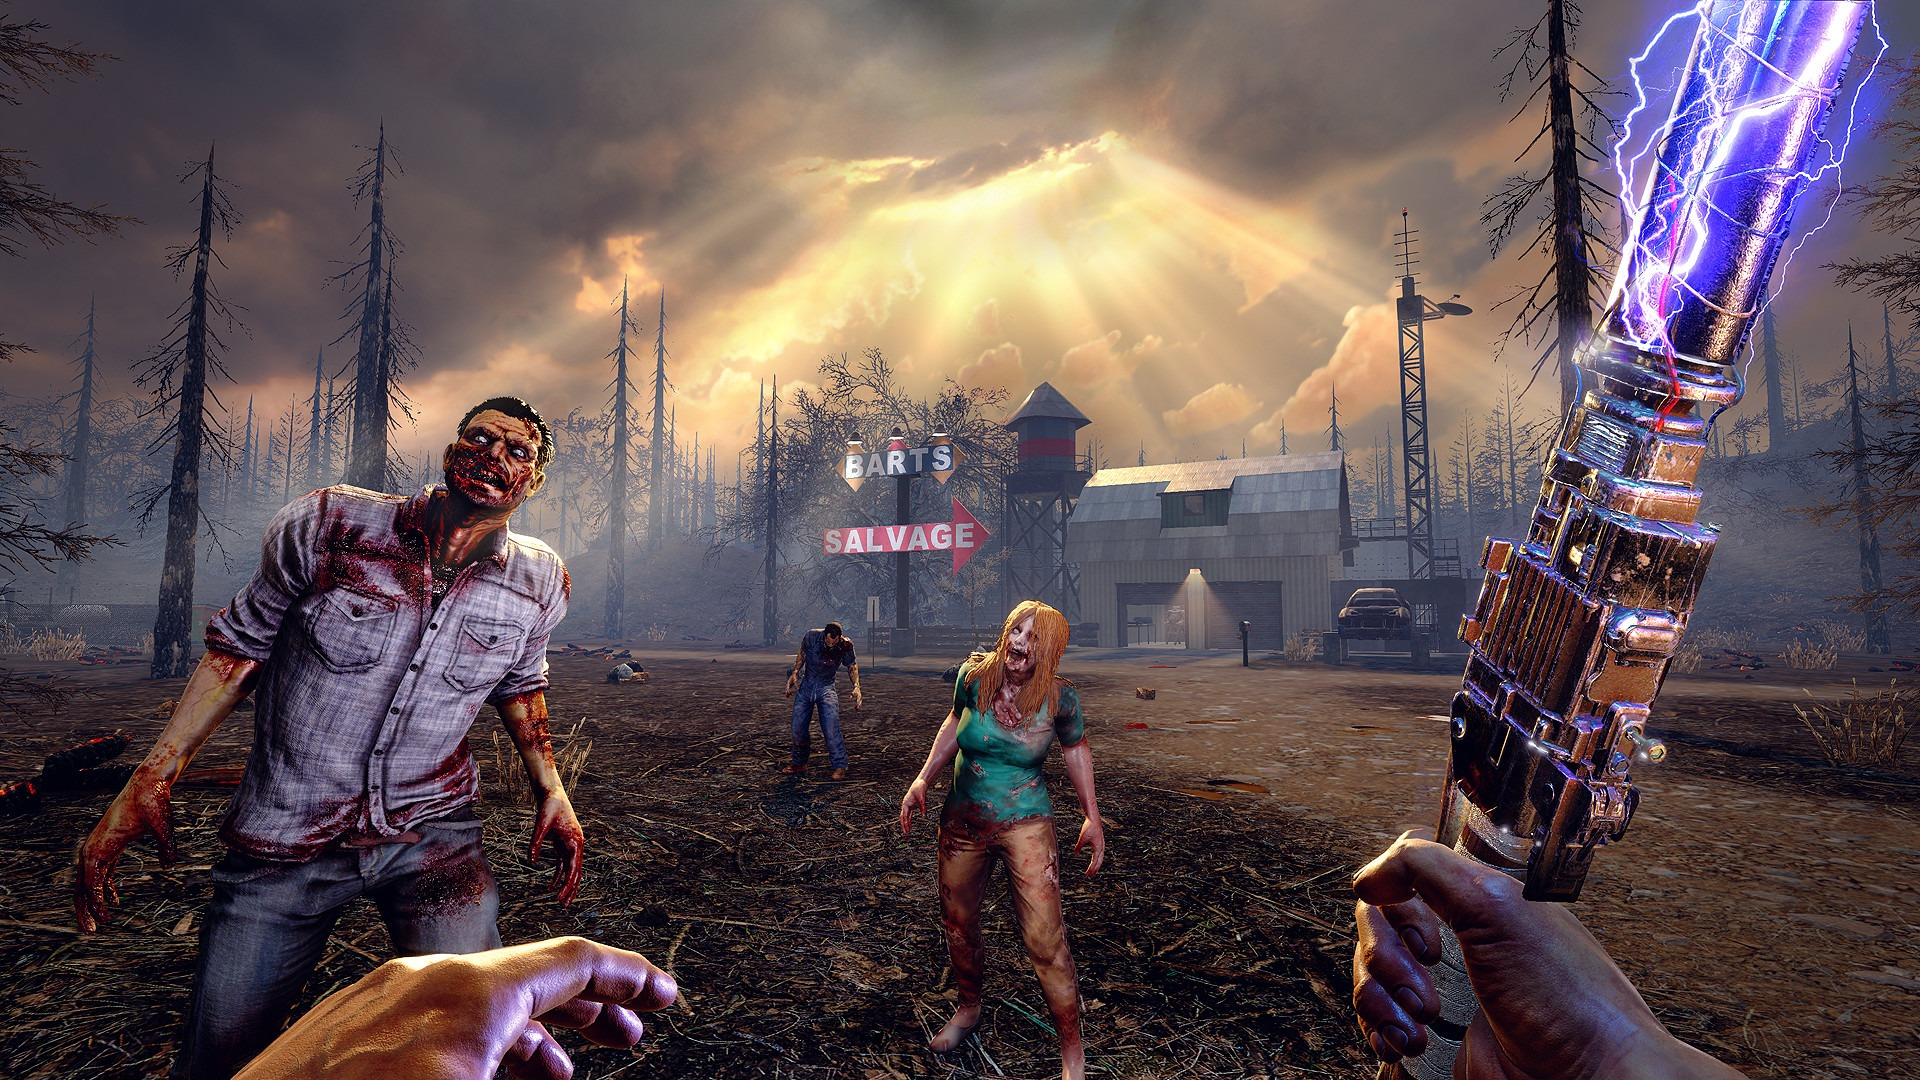 Buy Cheap 7 Days To Die Cd Key At The Best Price